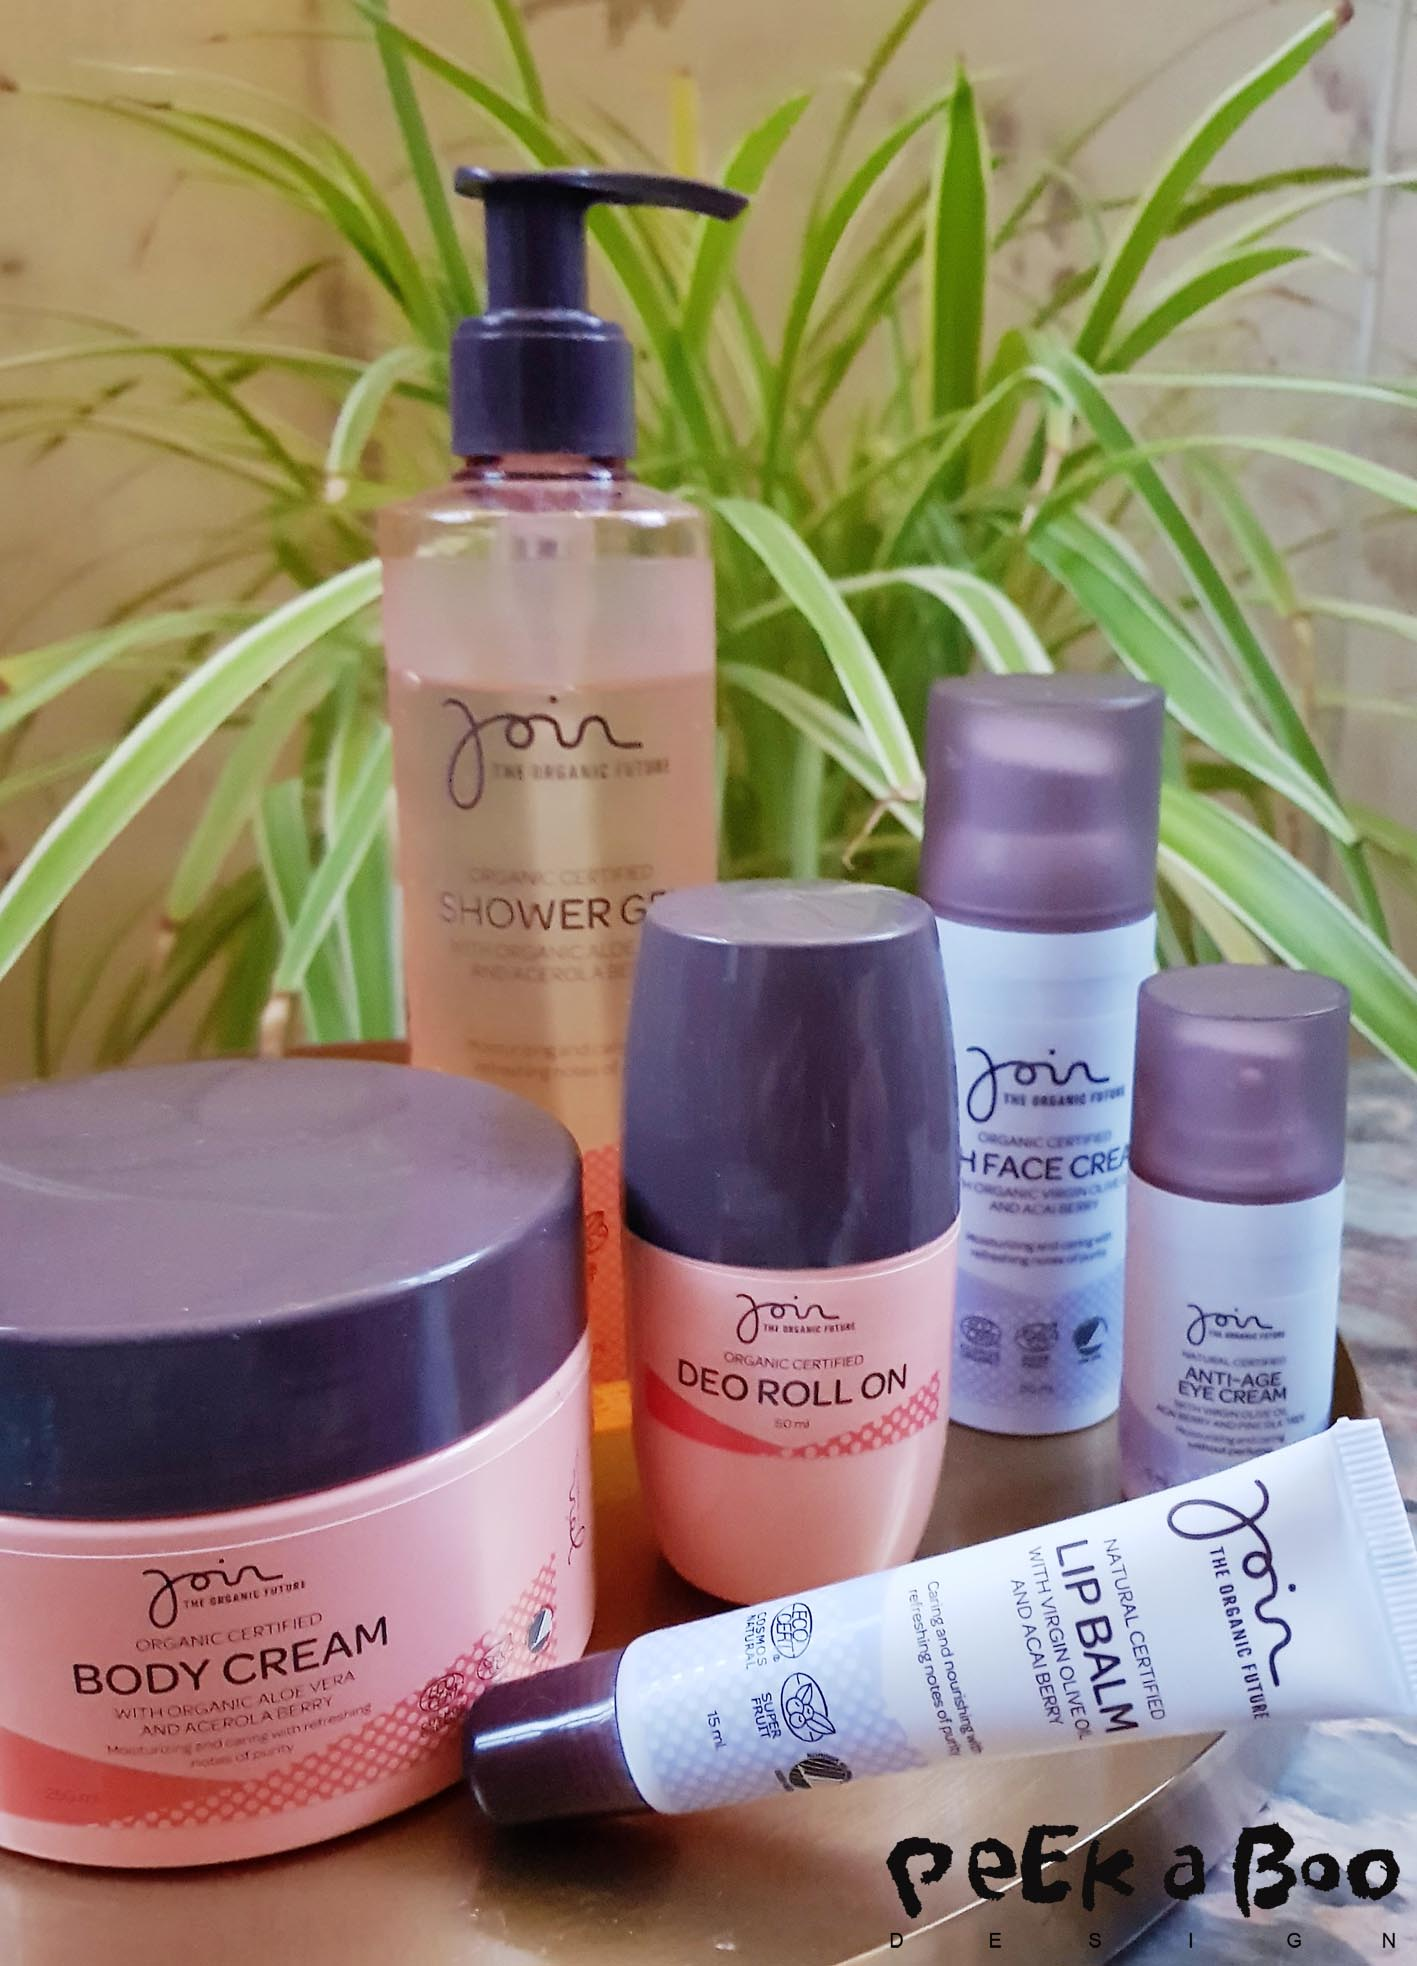 Join the organic future. New danish skincare products at very good prices. they are certified by Cosmos organic.